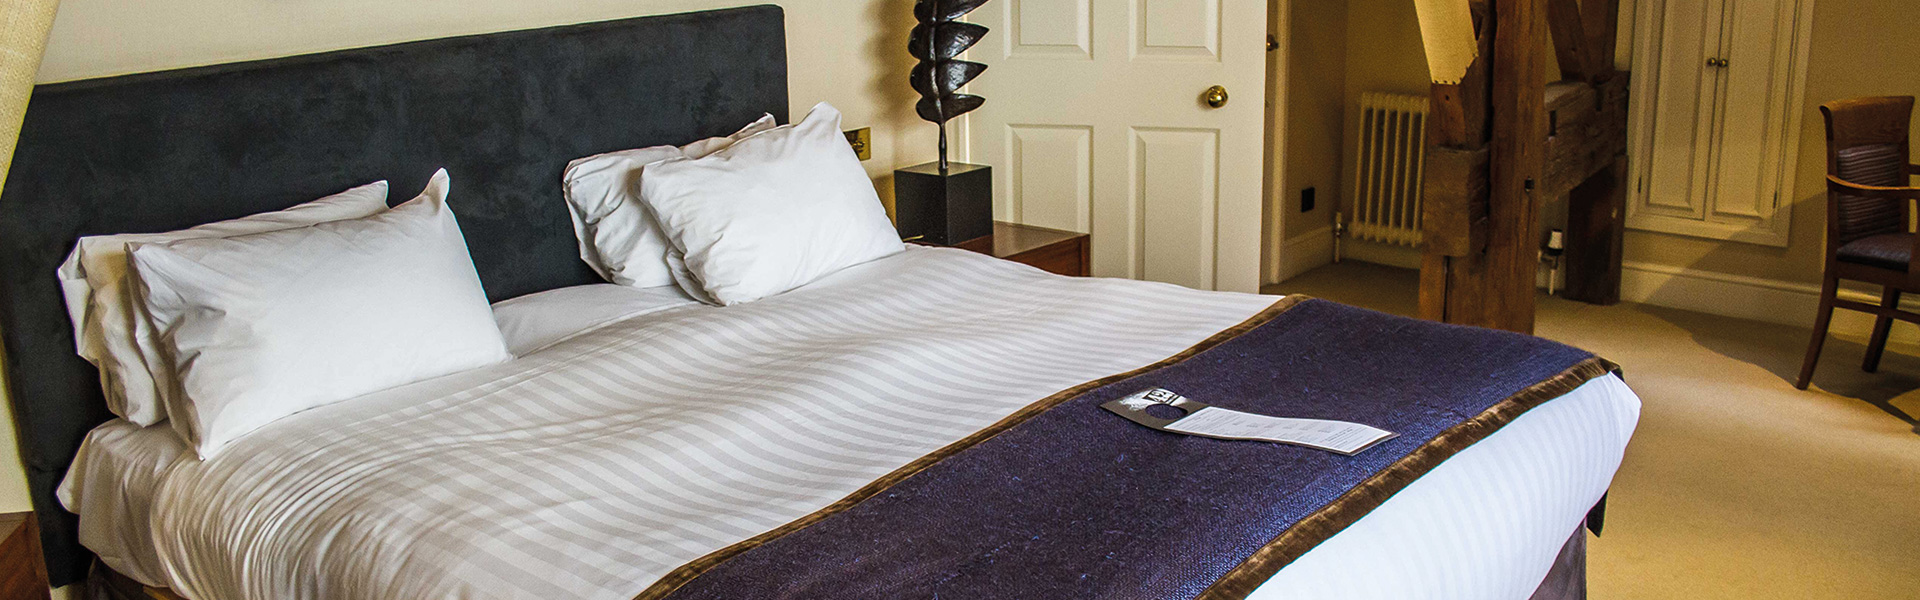 Exclusive Offers, Deals and Discounts   42 The Calls Hotel, Leeds   4-Star Luxury, Boutique Suites on the River Aire